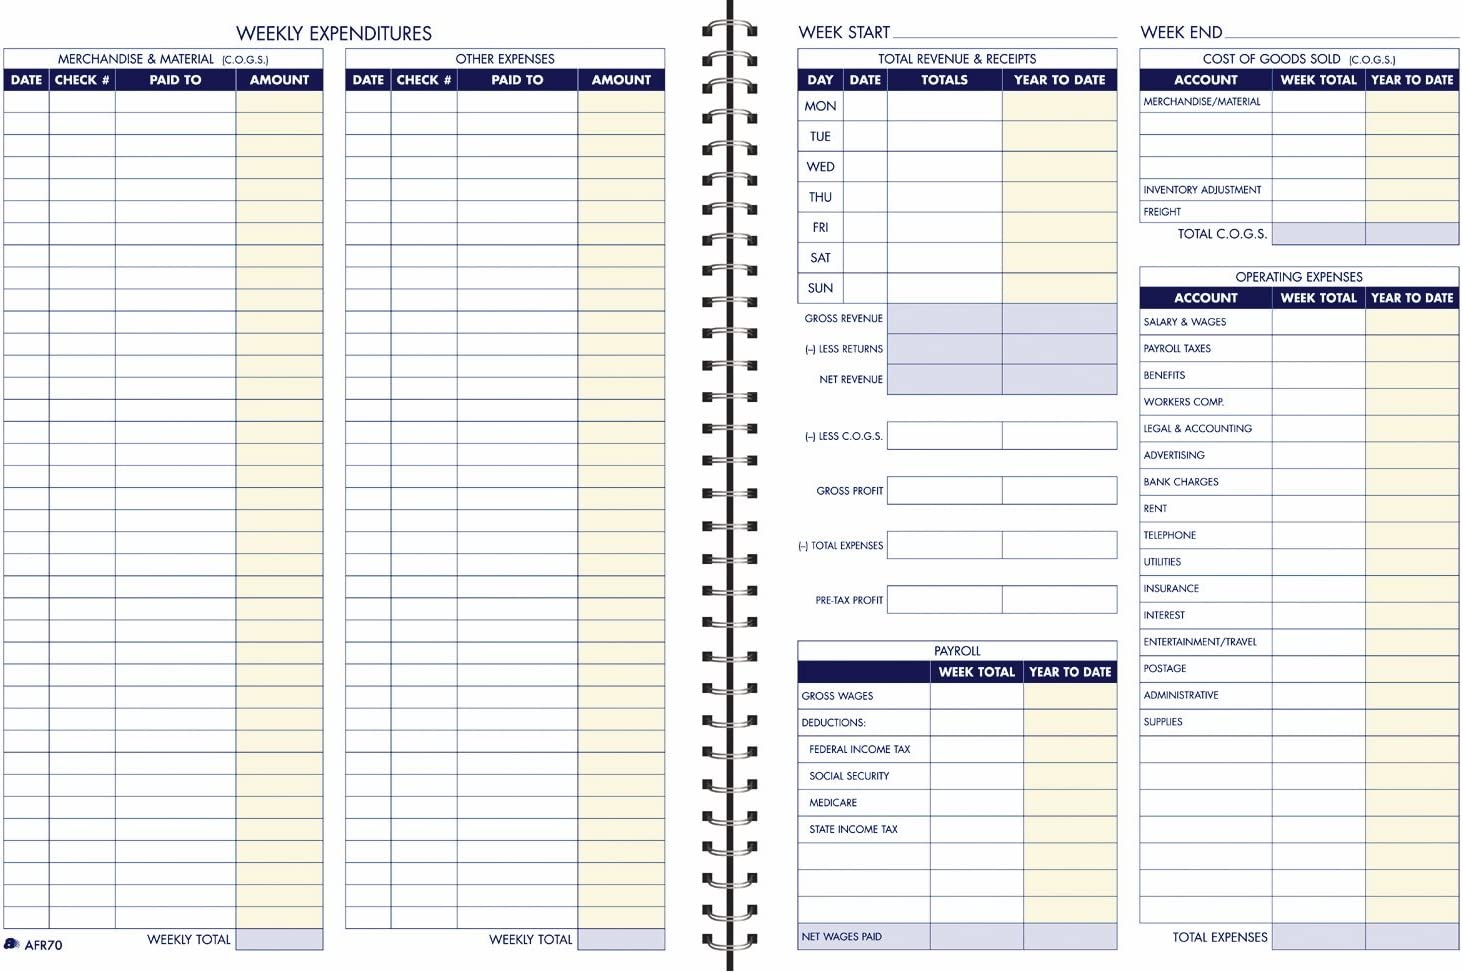 Adams Bookkeeping Record Book, Weekly Format, 8.5 x 11 Inches, White (AFR70)